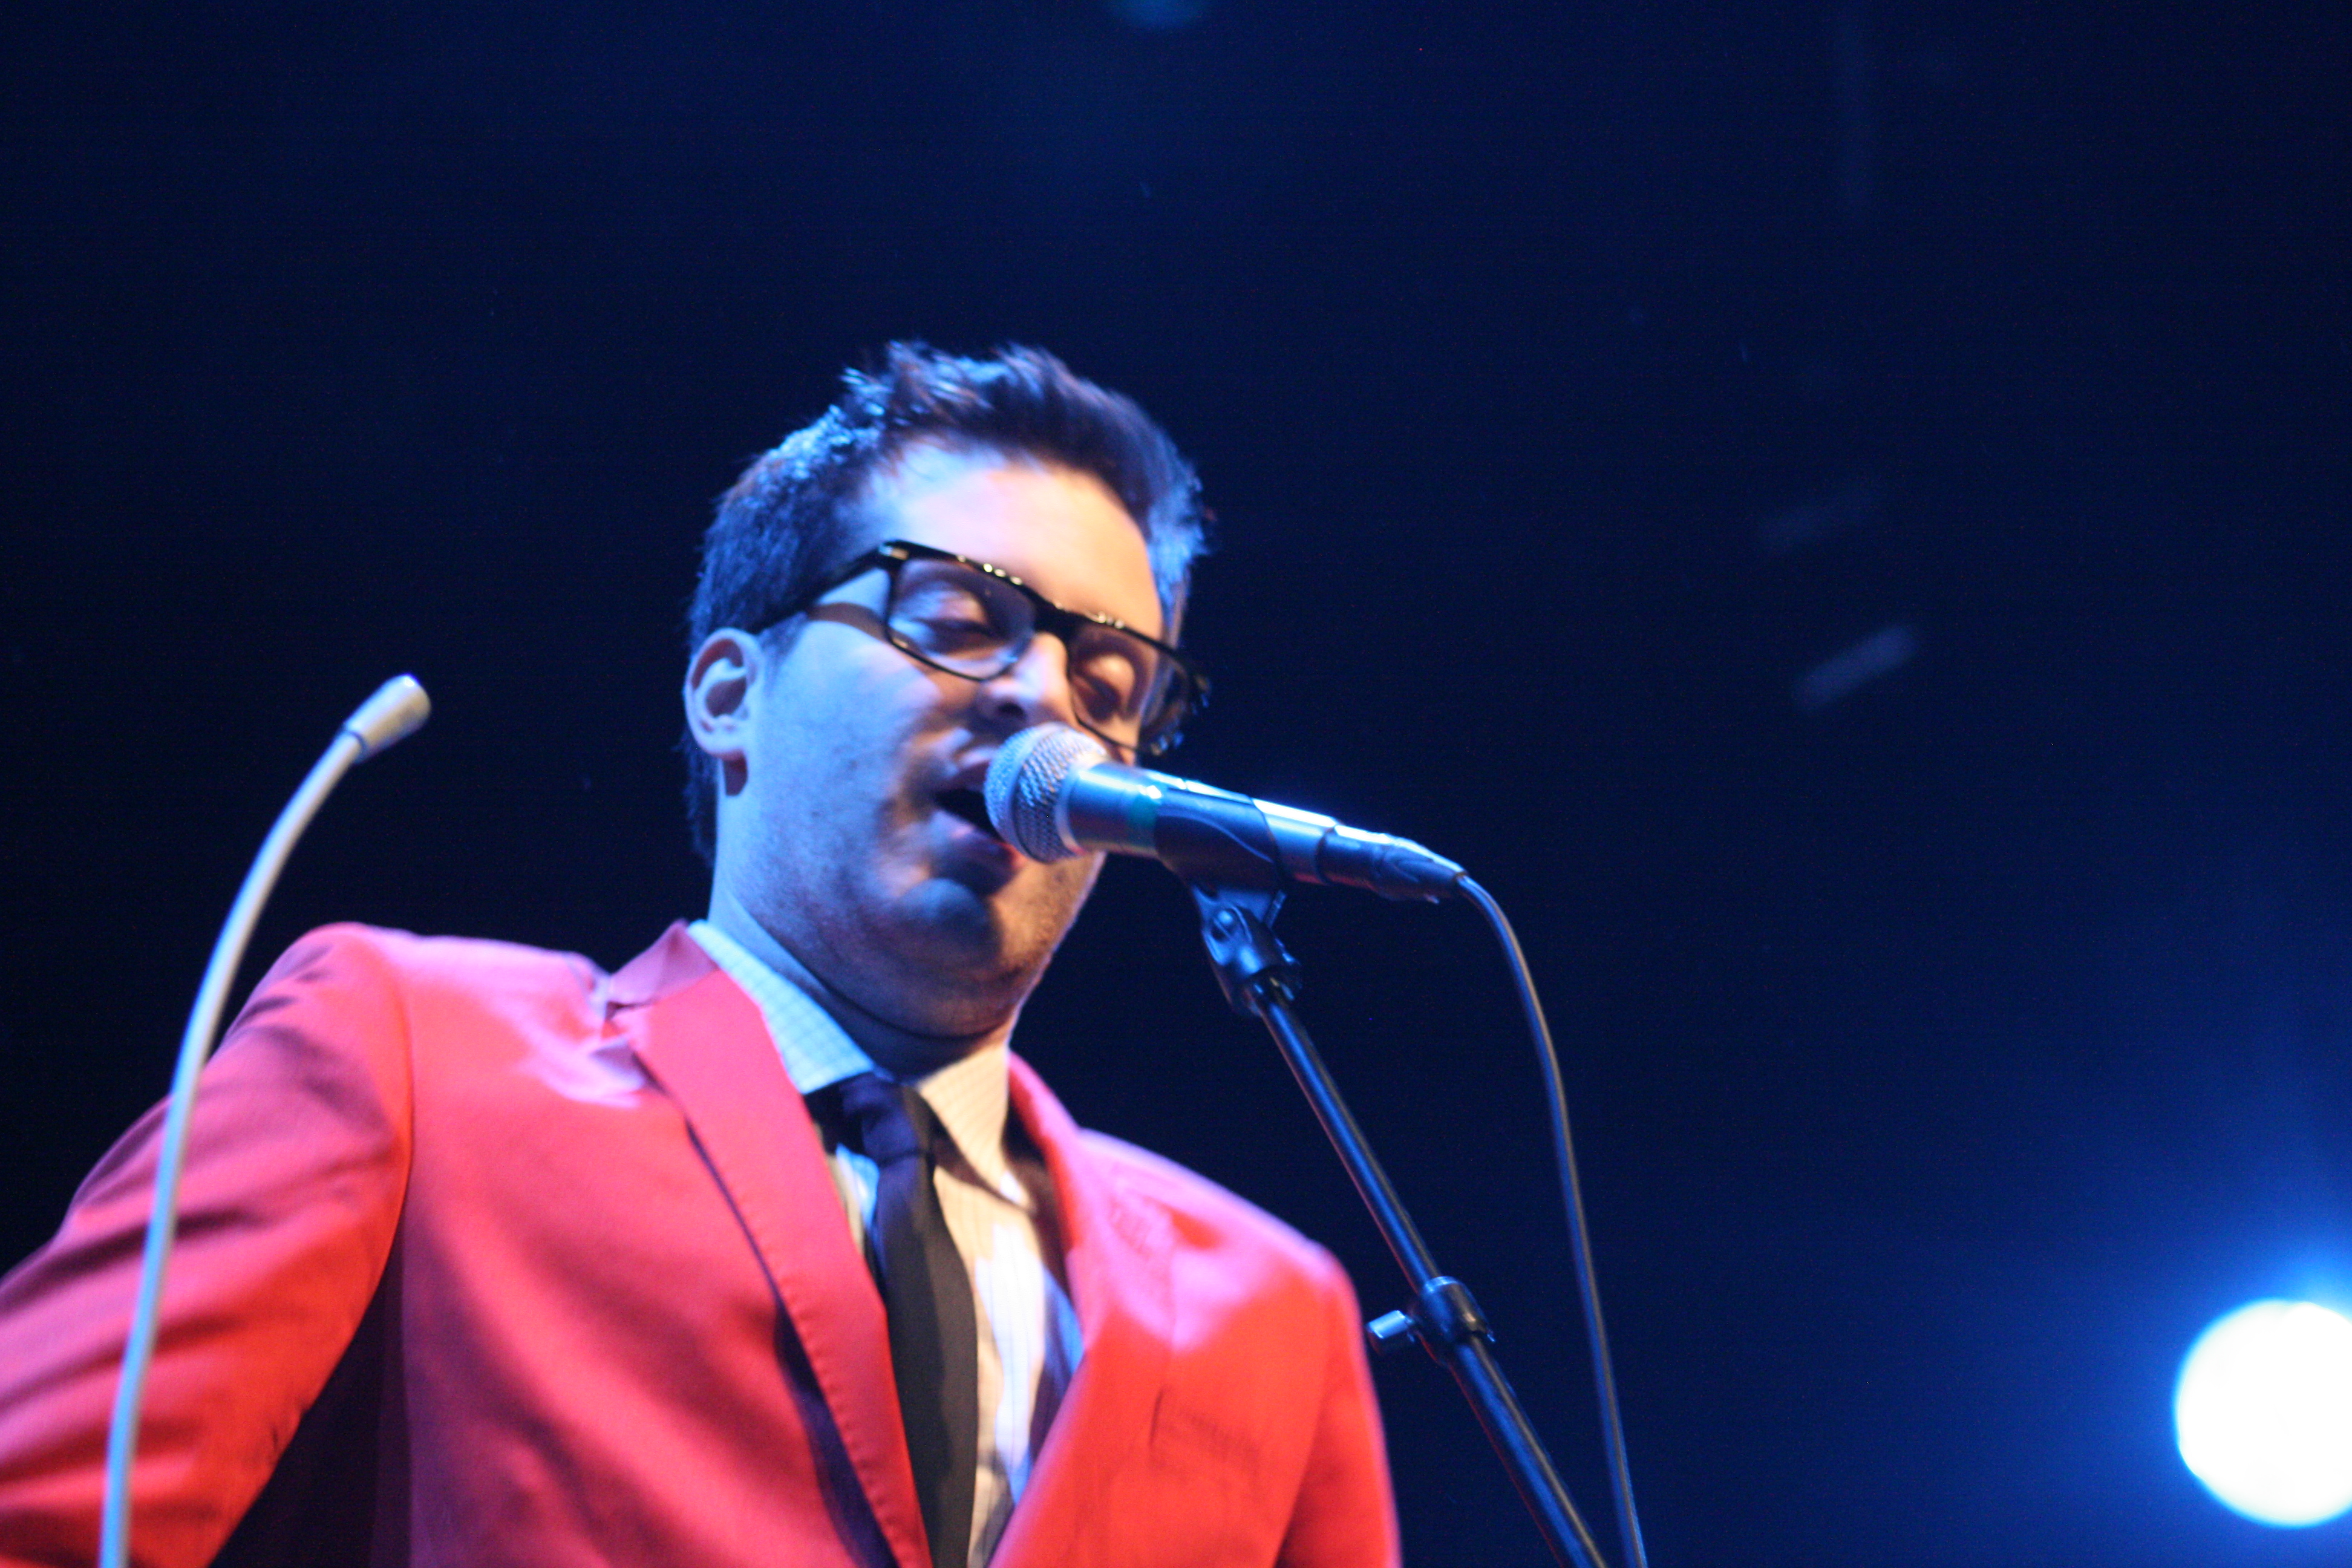 The 39-year old son of father (?) and mother(?) Mayer Hawthorne in 2018 photo. Mayer Hawthorne earned a  million dollar salary - leaving the net worth at 3.2 million in 2018